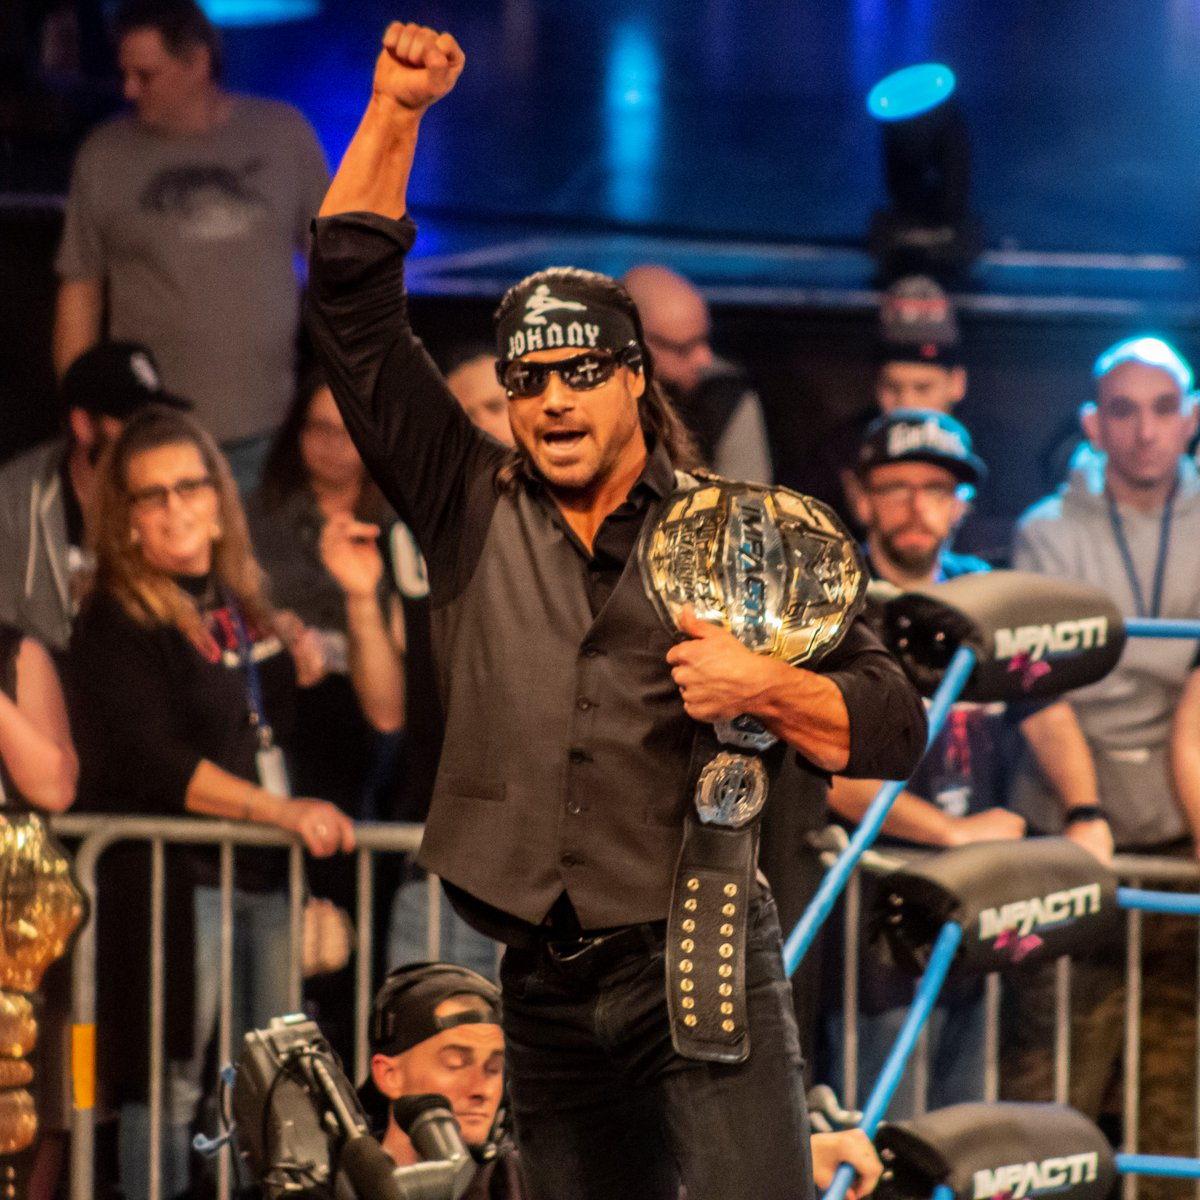 TheRealMorrison photo